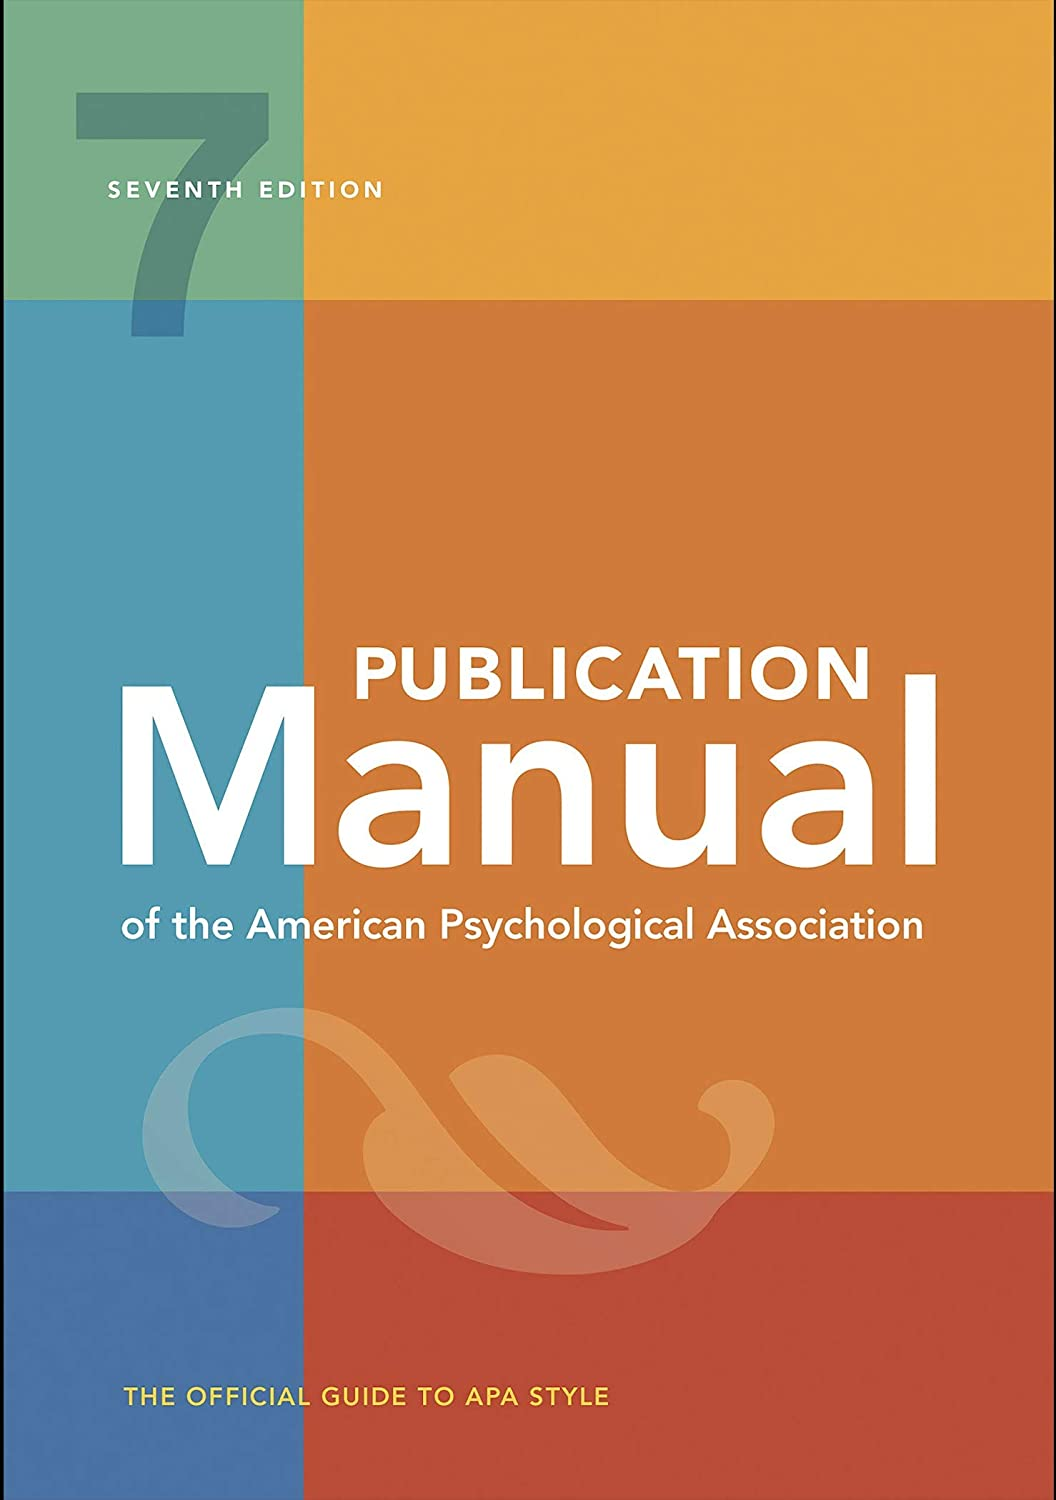 143383216X 9781433832161 Publication Manual of The American ...